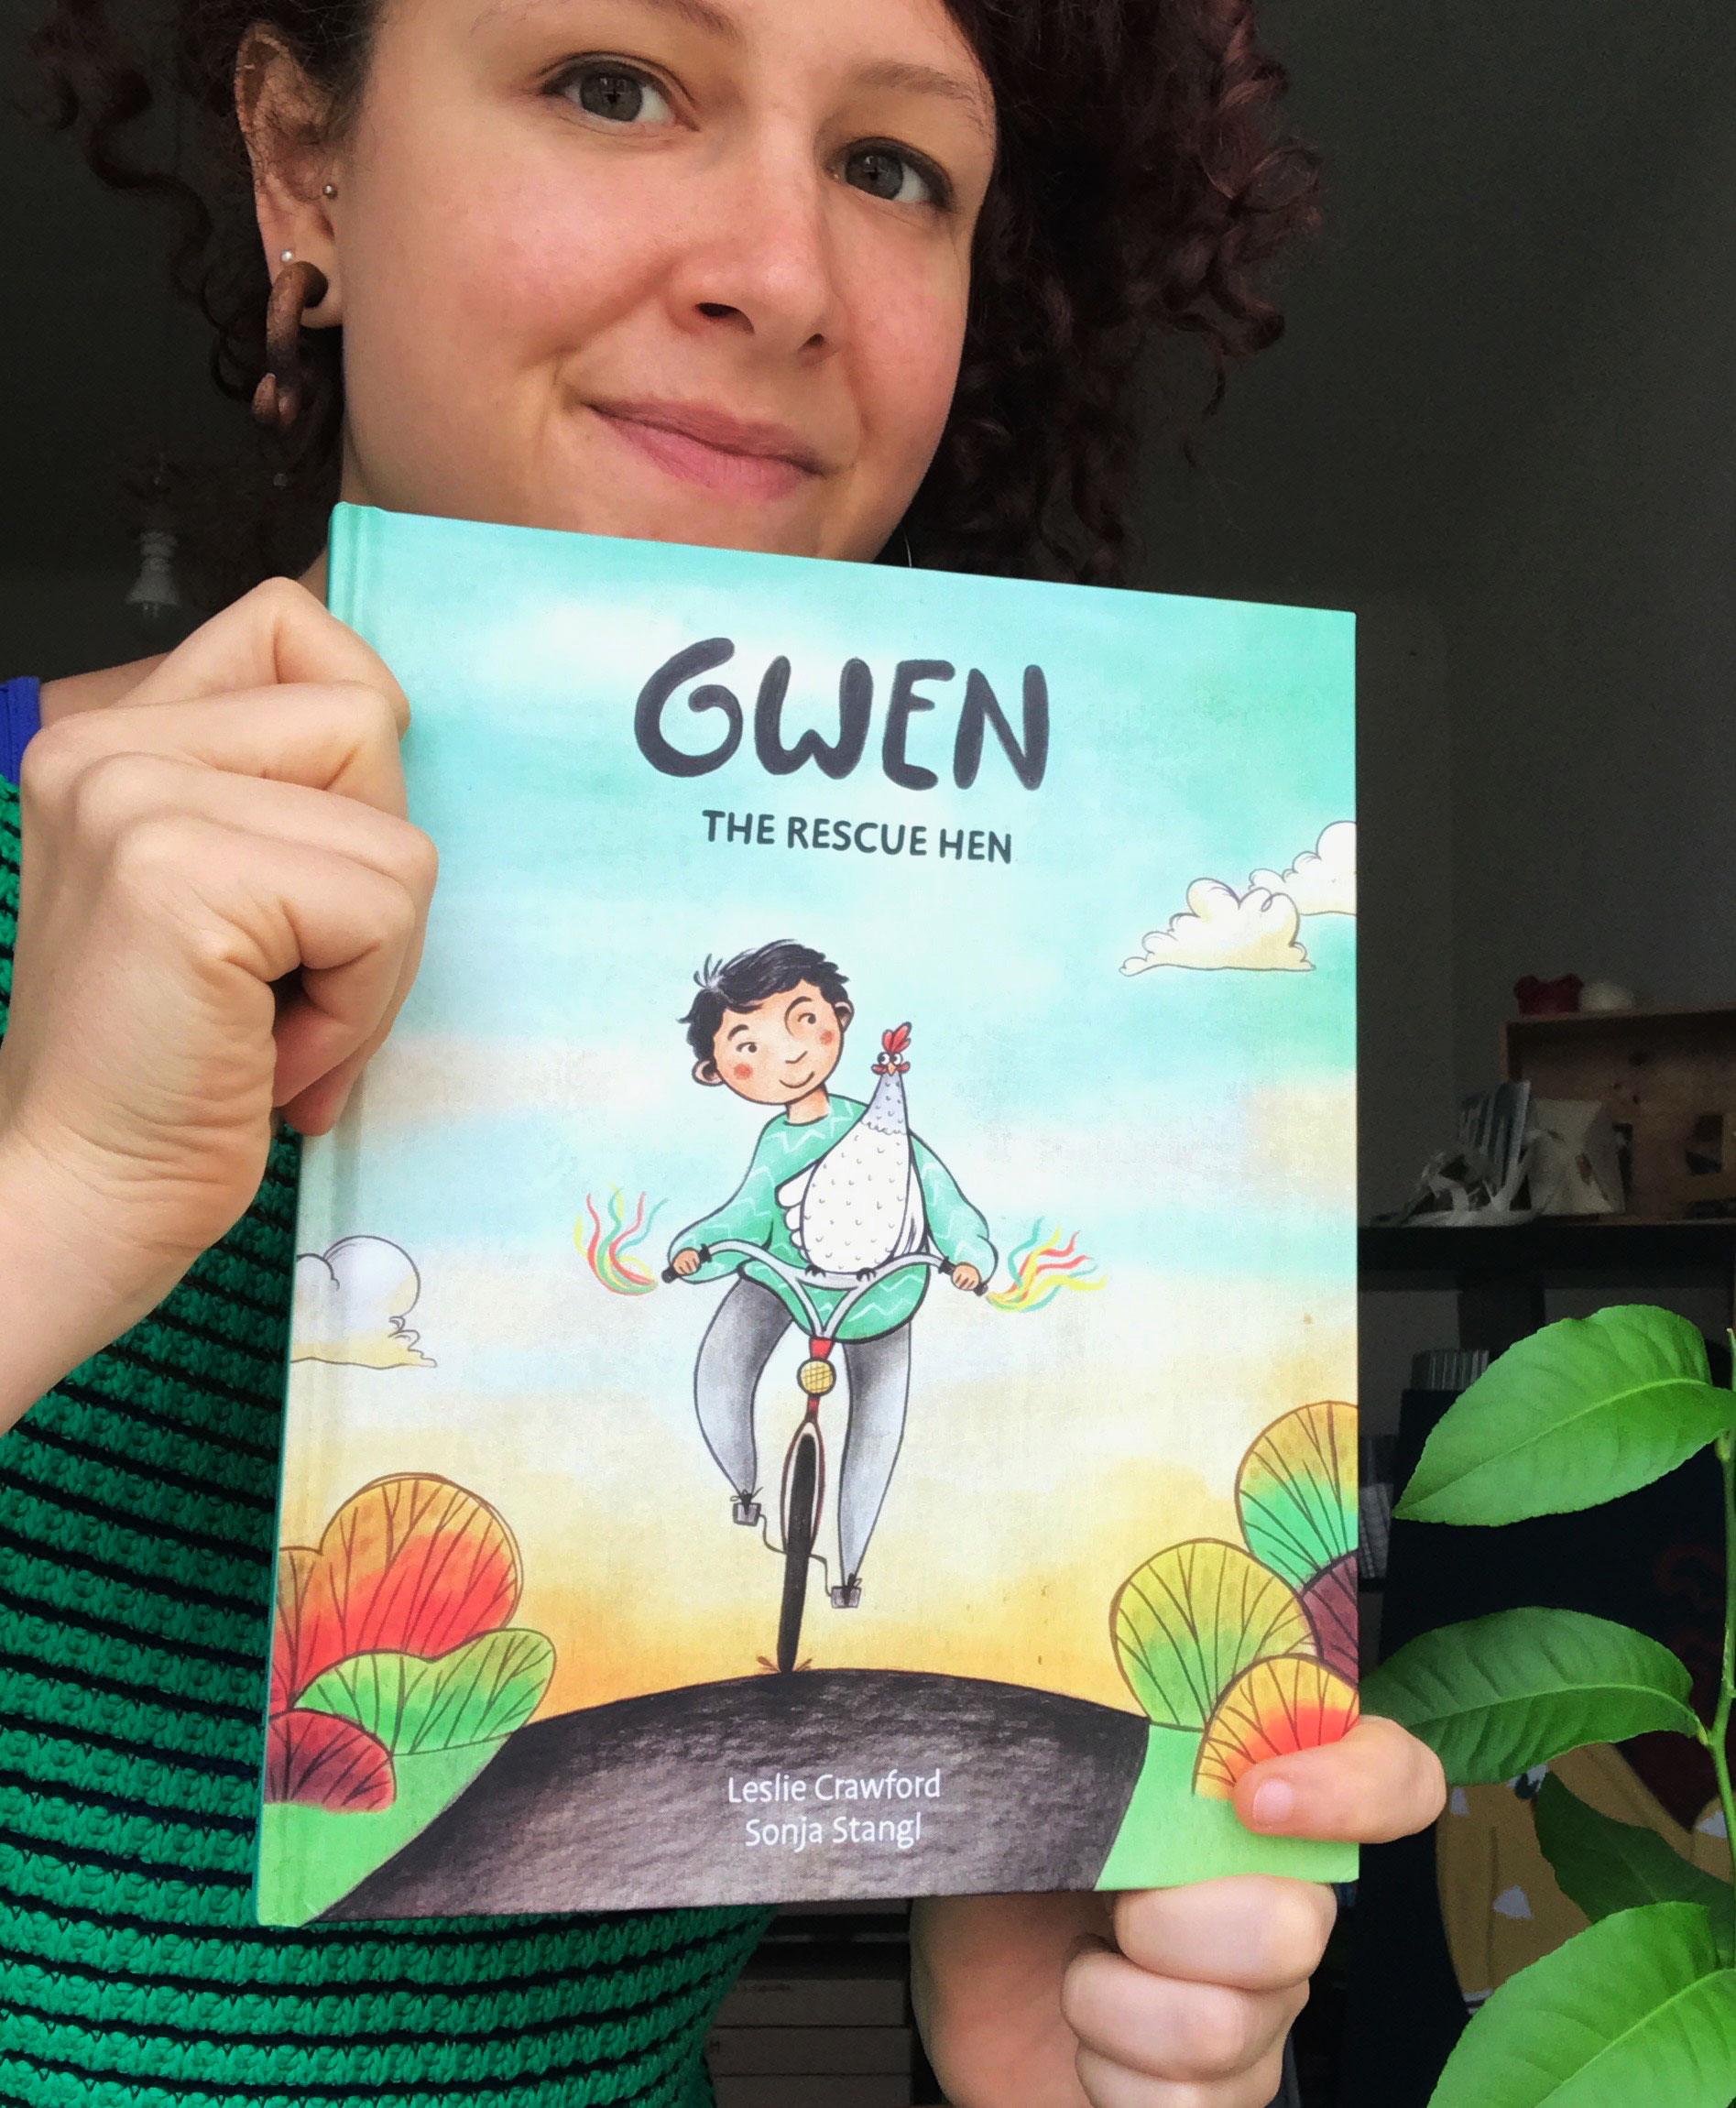 Sonja Stangl, who brought the adventuresome chicken in  Gwen the Rescue Hen  to life, is a Vienna-based children's book illustrator with a soft-spot for farm animals.